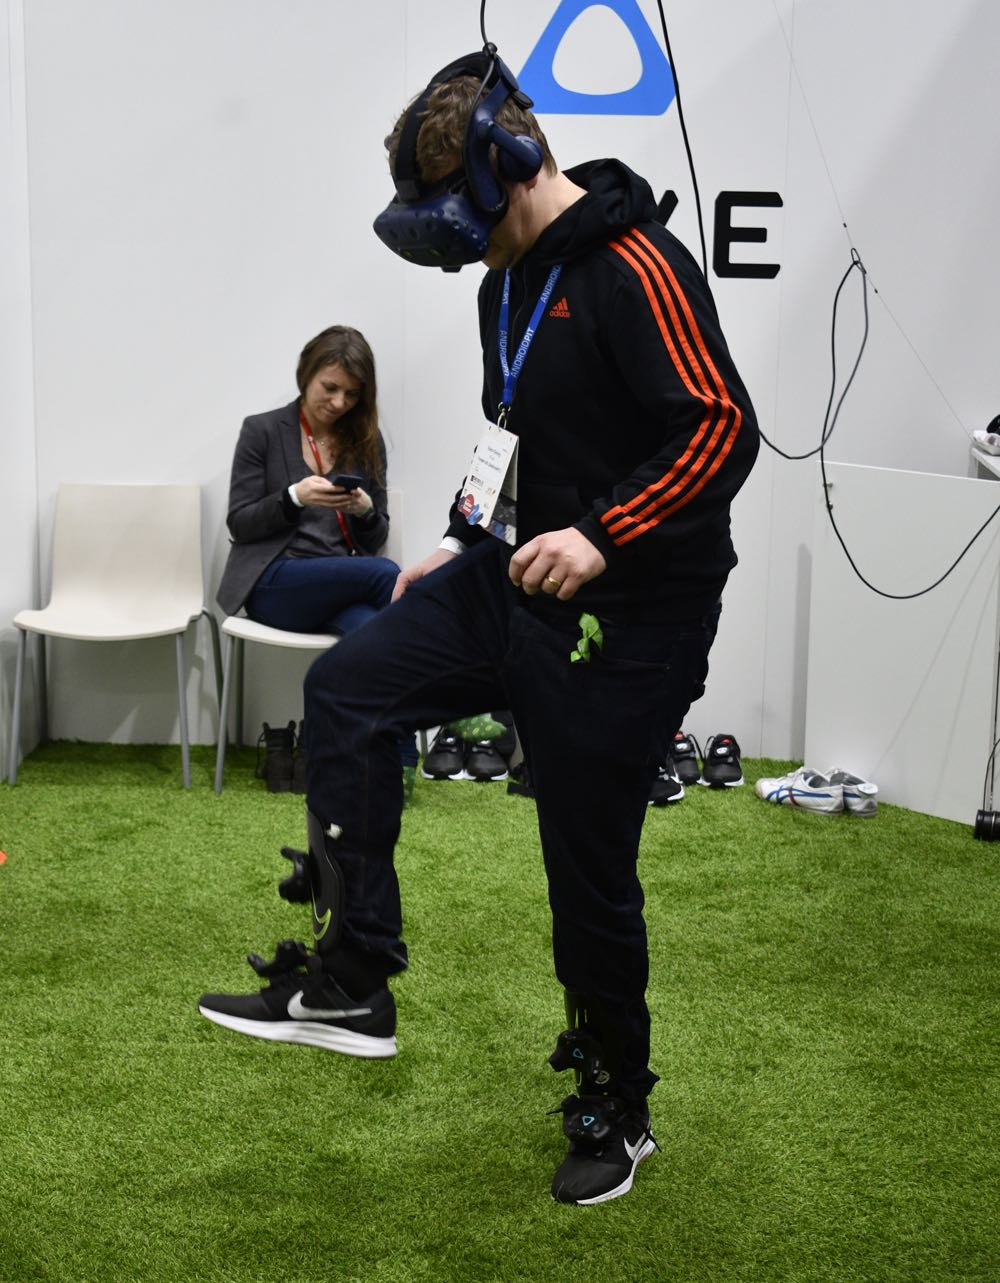 Soccer training with the HTC Vive Pro